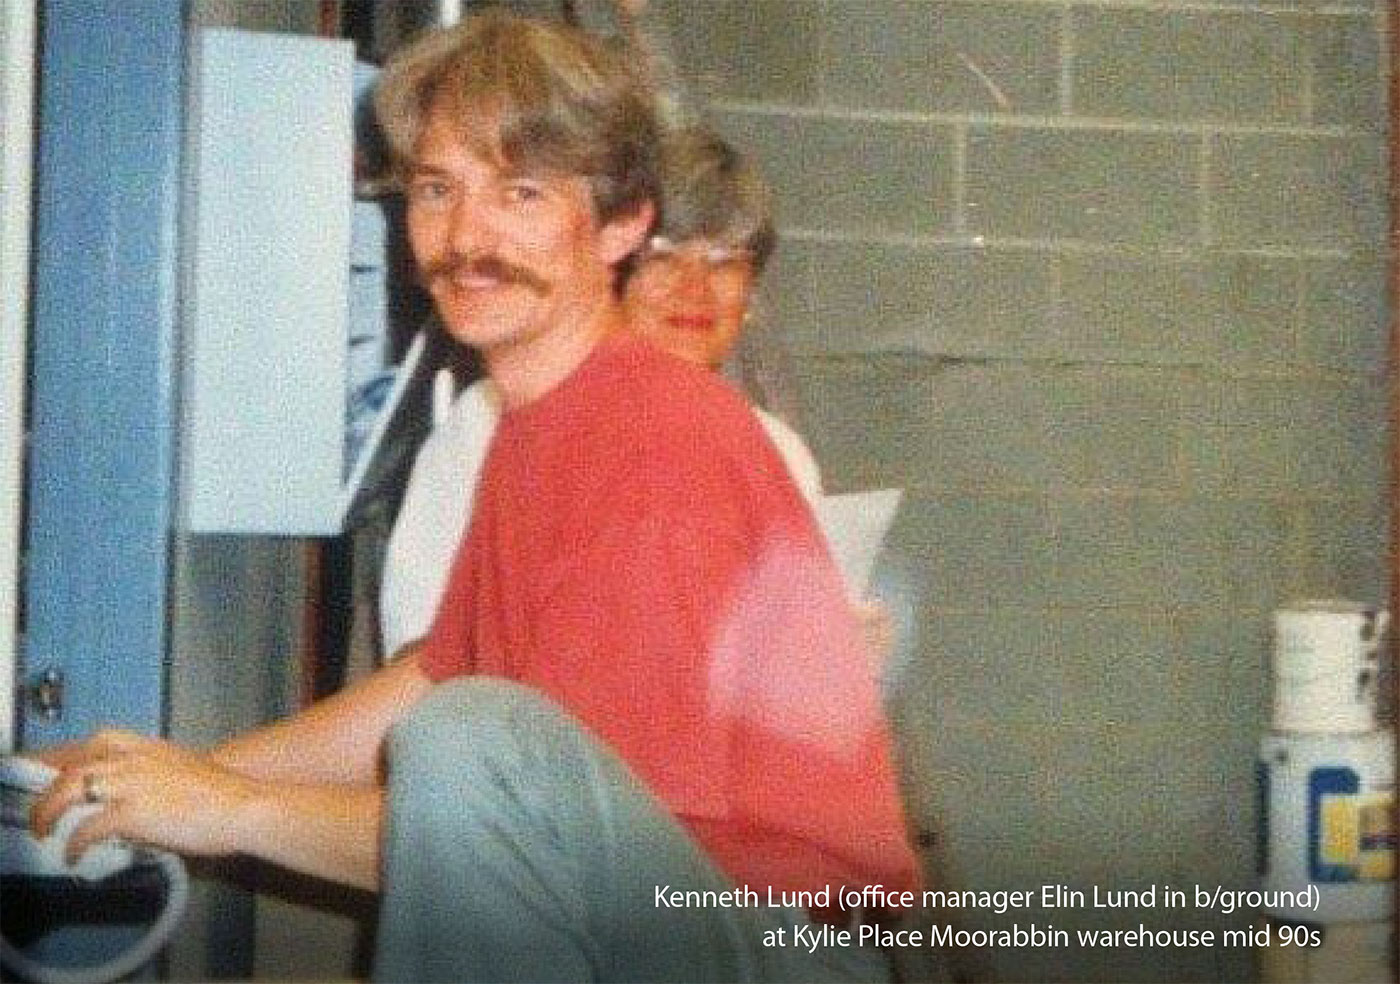 Kenneth Lund (office manager Elin Lund in background) at Kylie Moonrabbin warehouse mid 90s